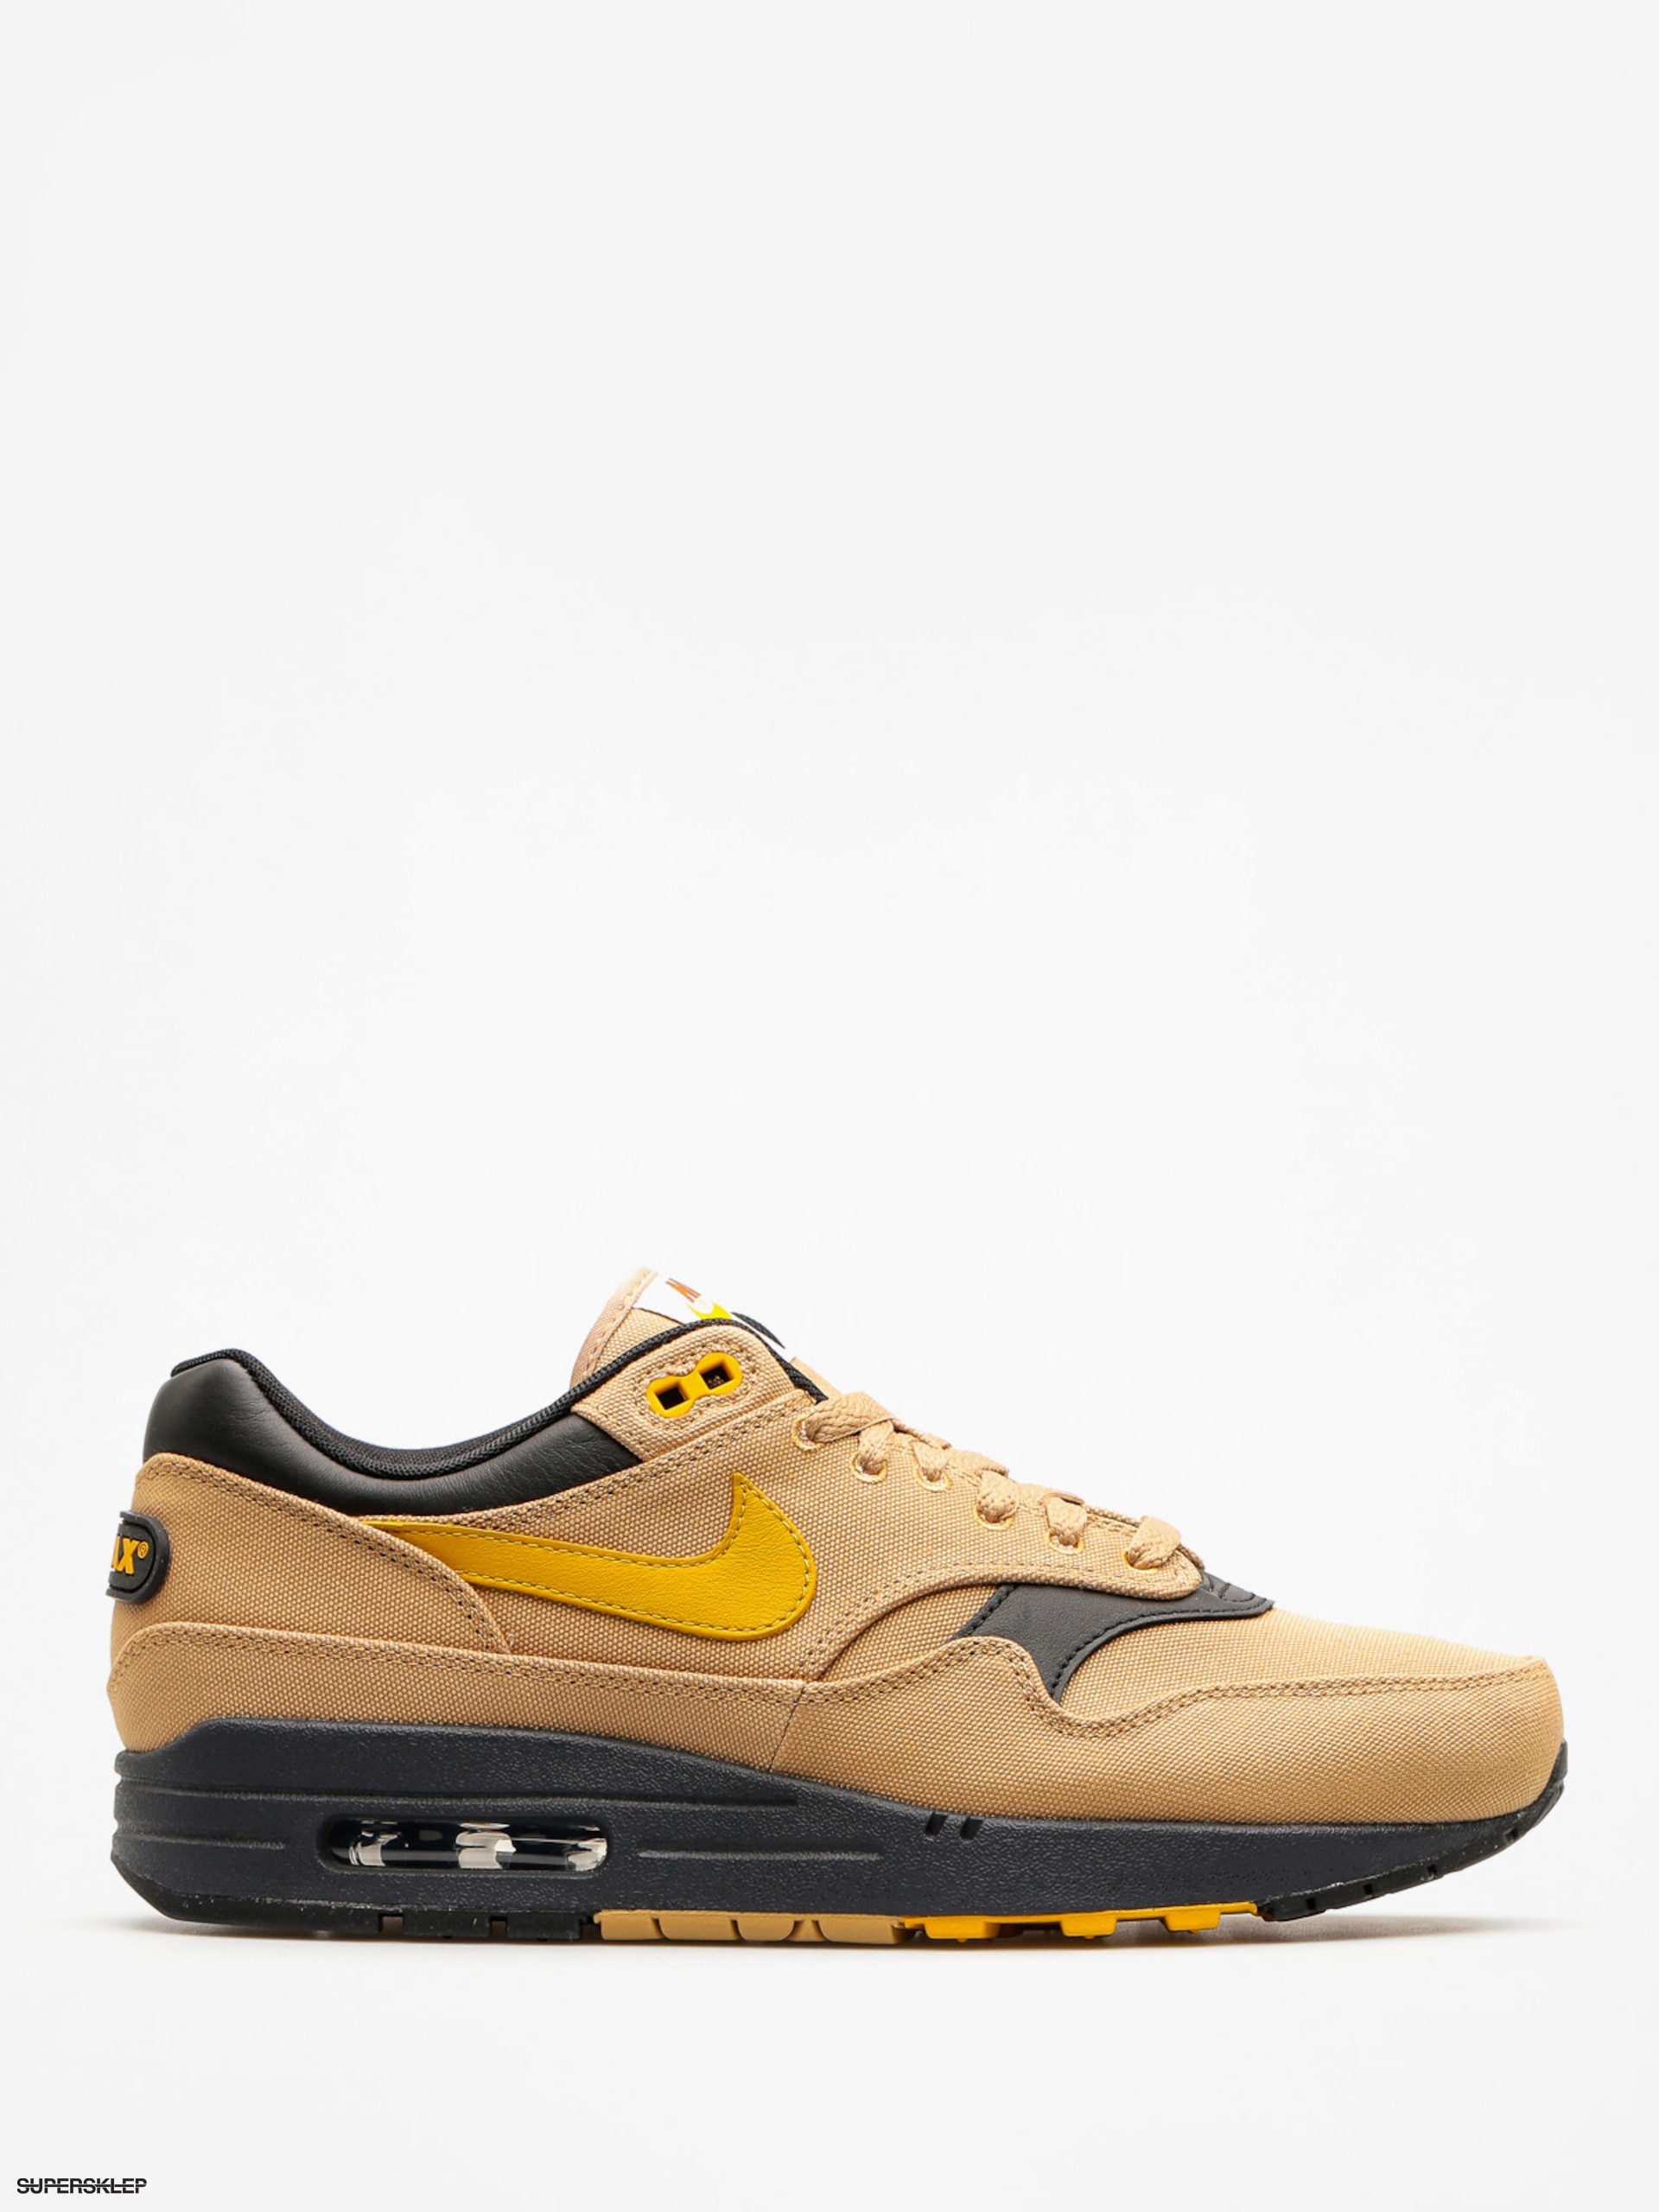 "Topánky Nike Air Max 1 Premium (elemental gold/mineral yellow black ""93 logo pack"" )"